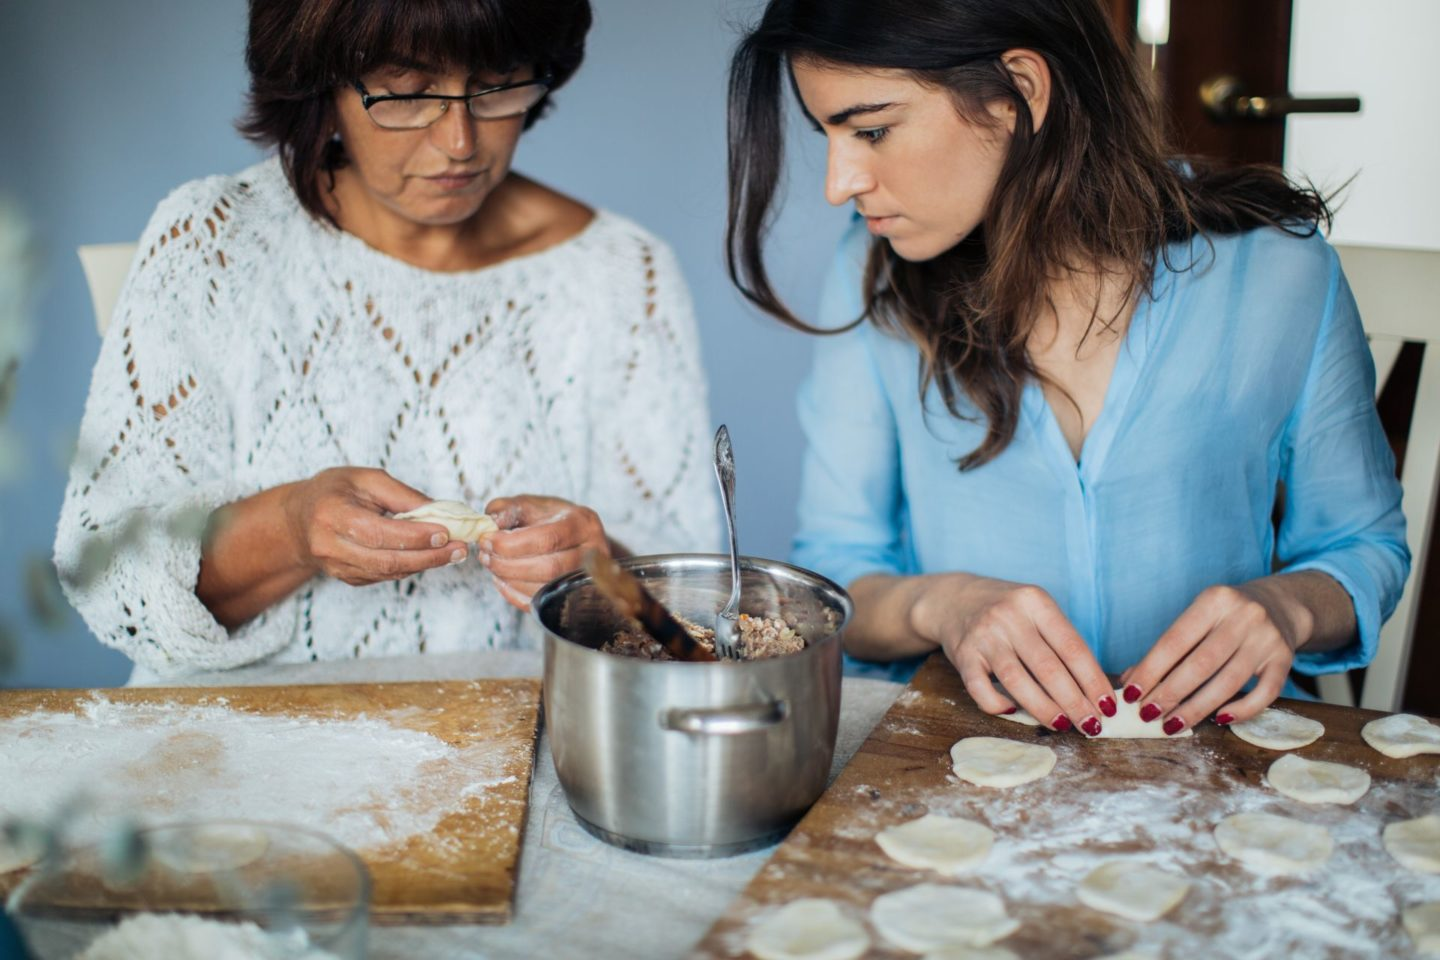 Mother and daughter making dumplings together.